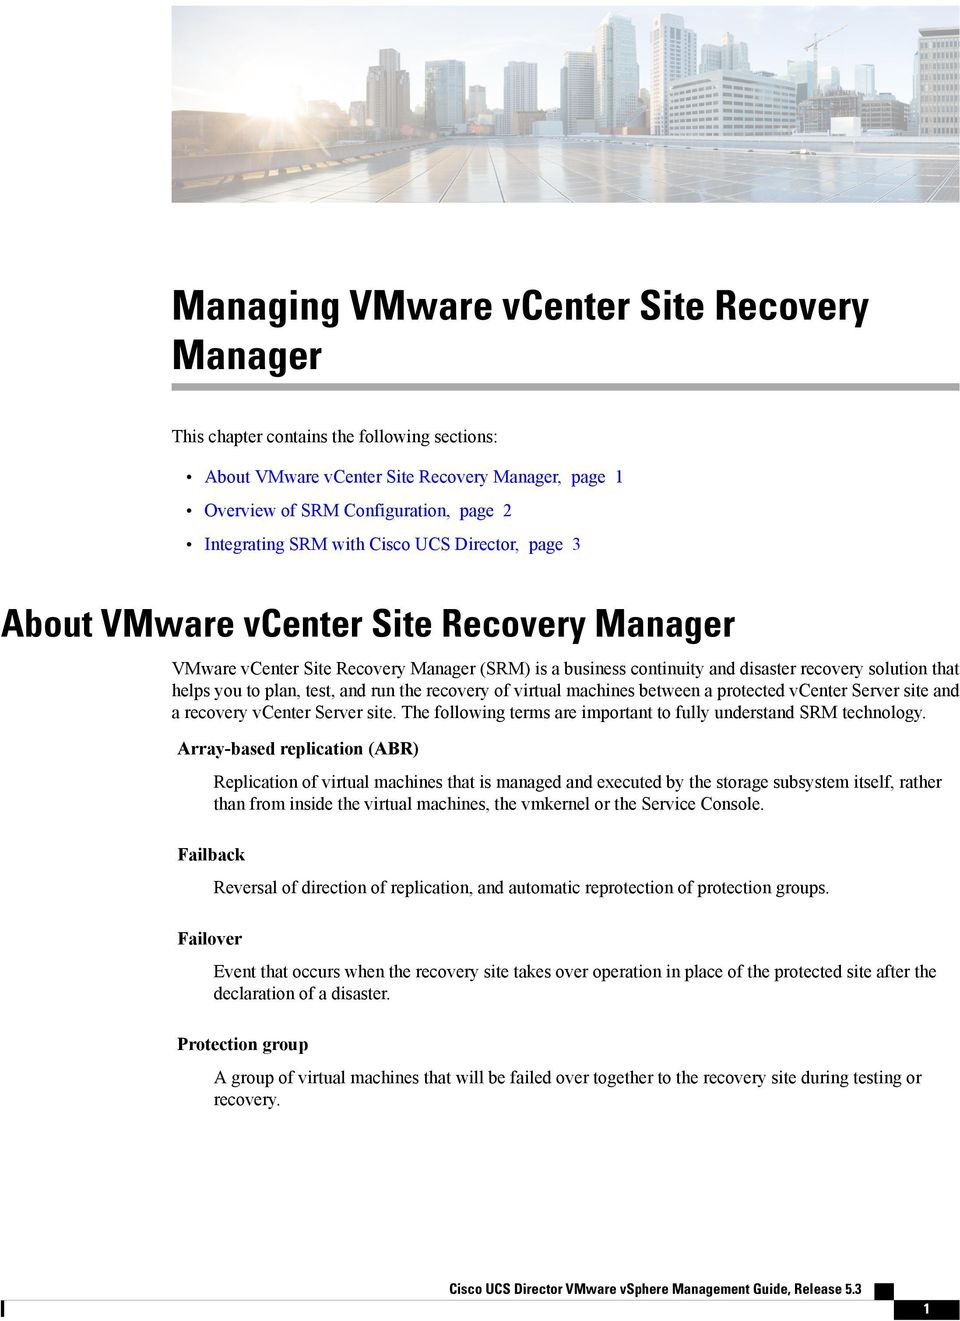 test, and run the recovery of virtual machines between a protected vcenter Server site and a recovery vcenter Server site. The following terms are important to fully understand SRM technology.